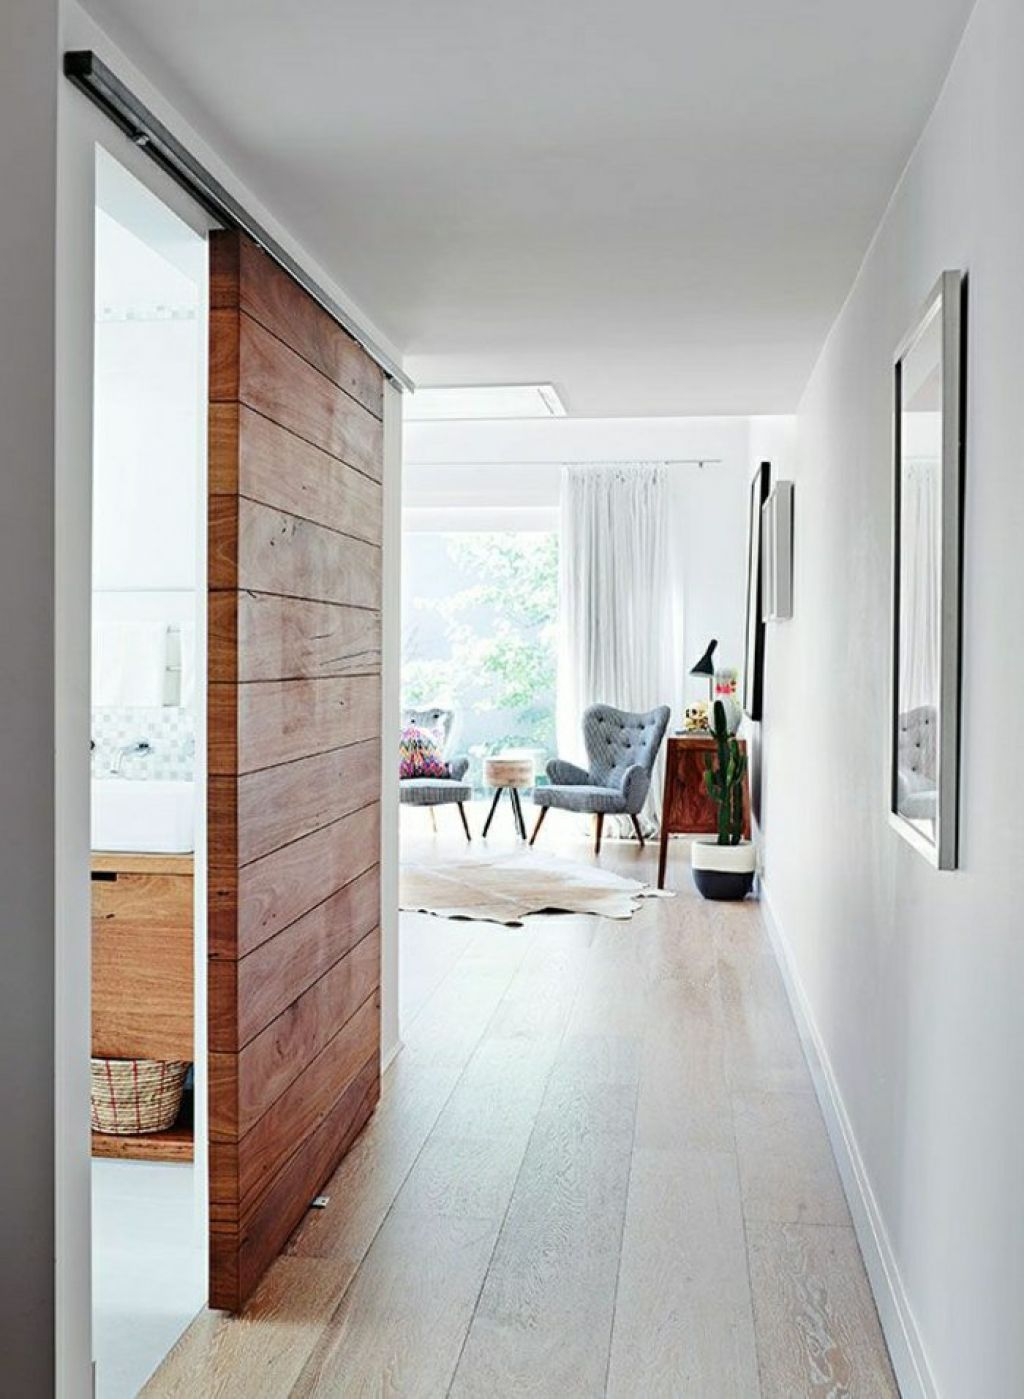 Fix A Squeaky Sliding Door In Your House Home Sliding Door Design Sliding Doors Interior